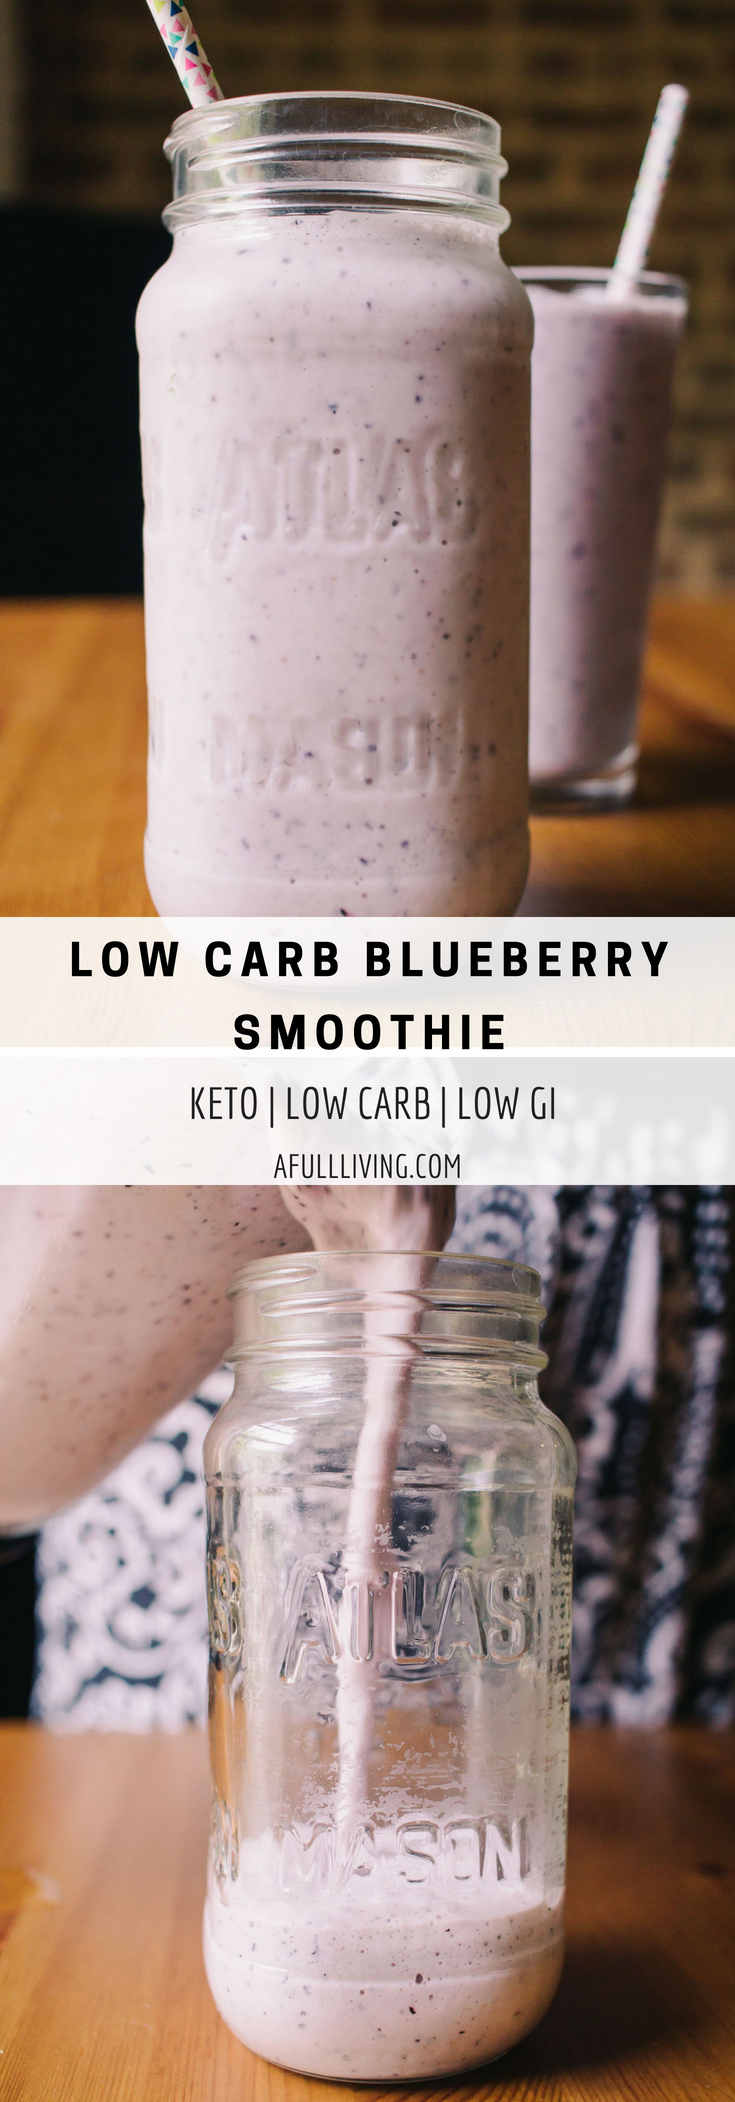 Low Carb Blueberry Smoothie, Keto, Low Sugar, Low GI, A Full Living #recipe #lowcarb #lowcarbrecipe